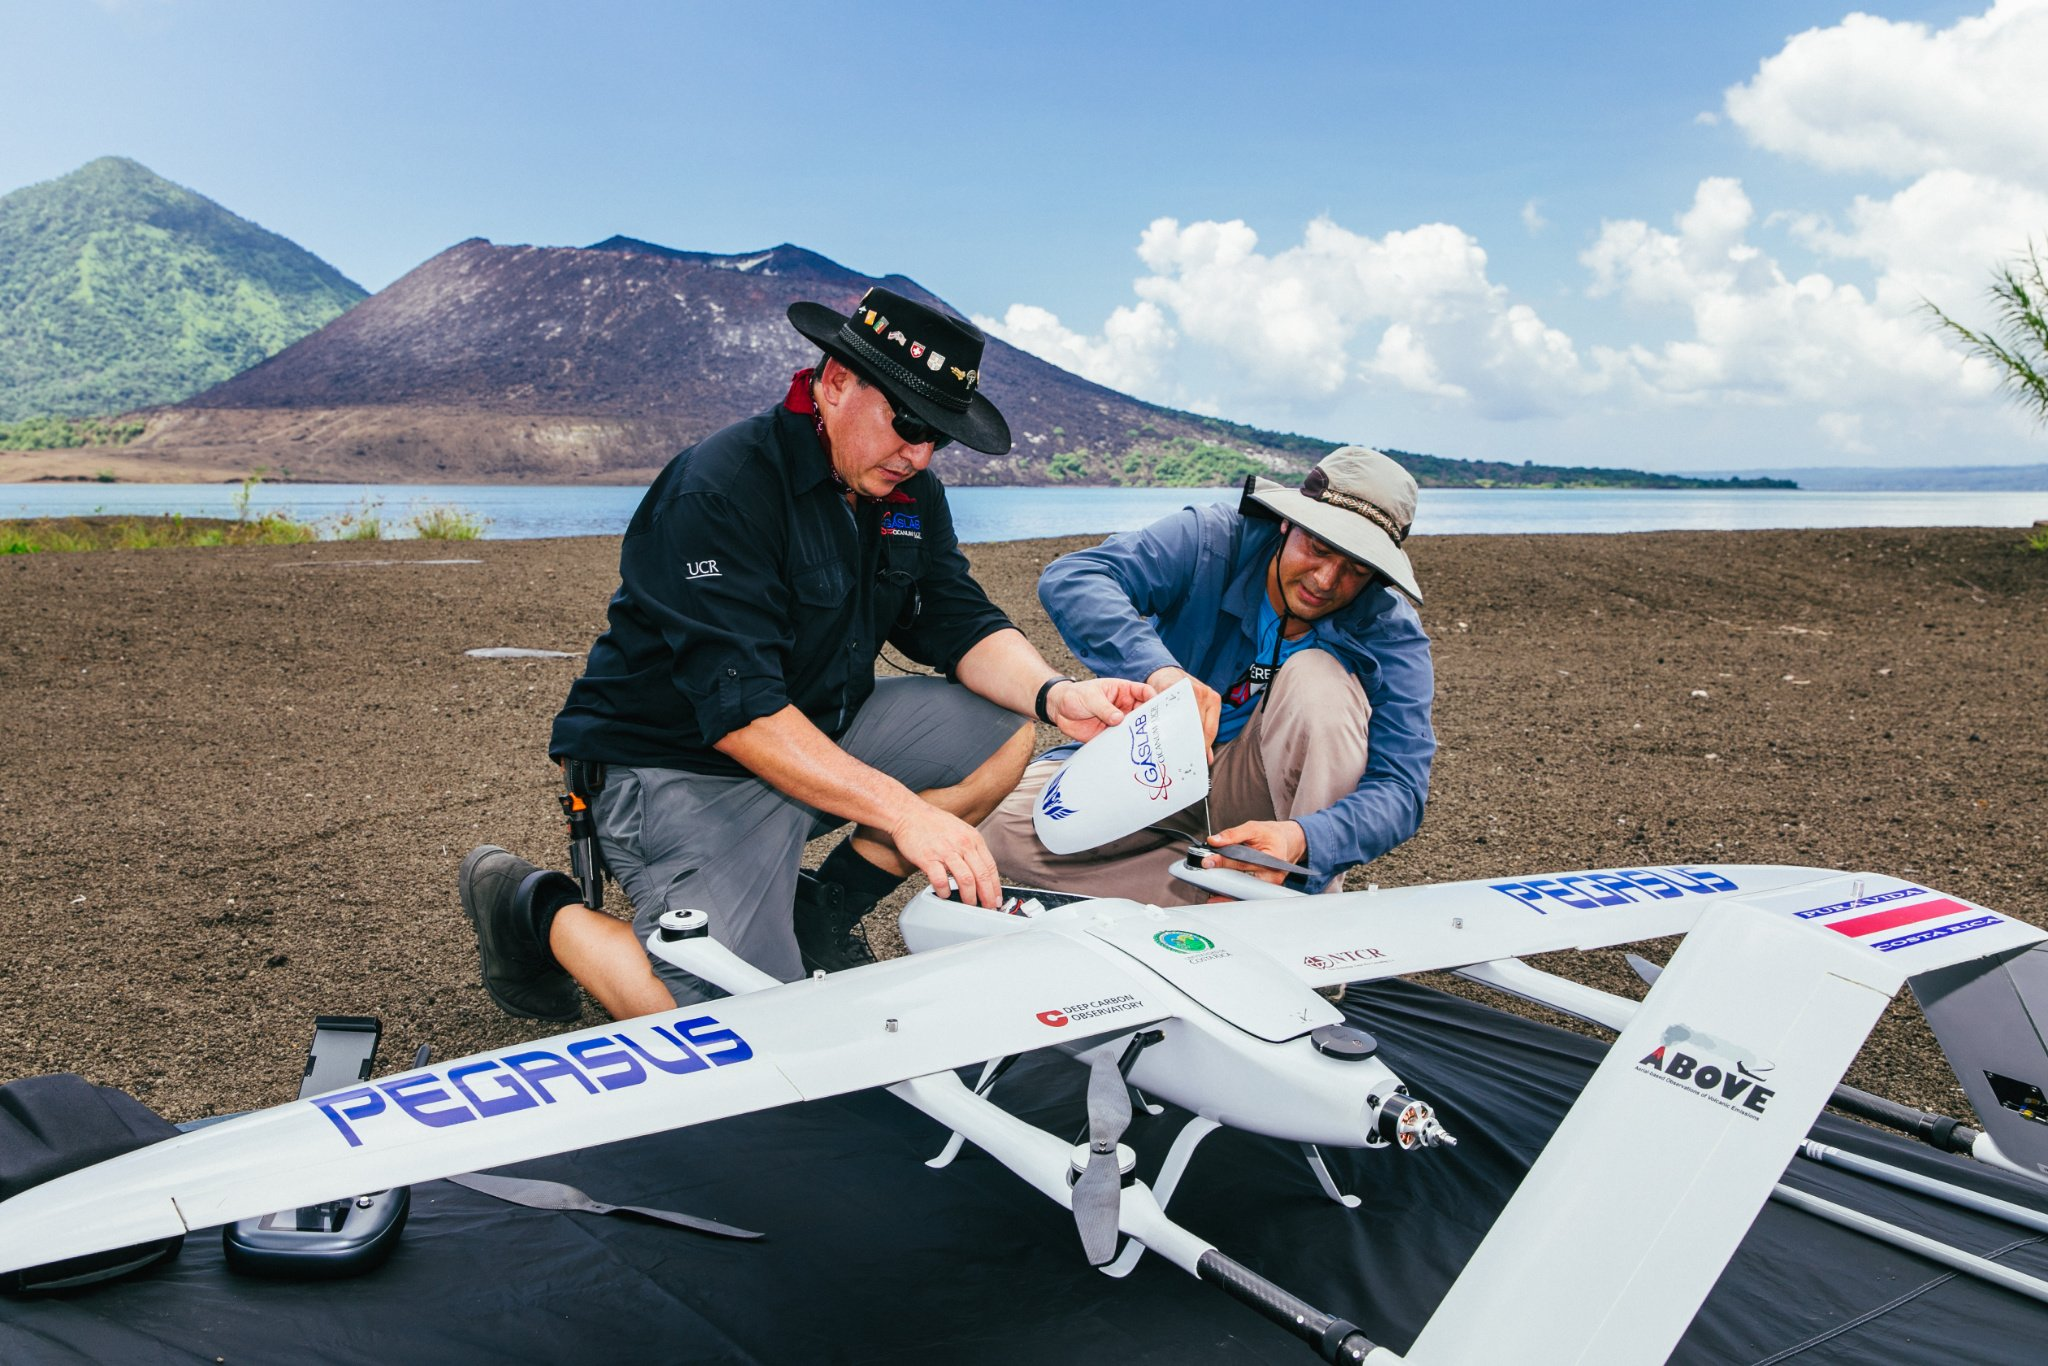 Drone used to measure volcanic gases